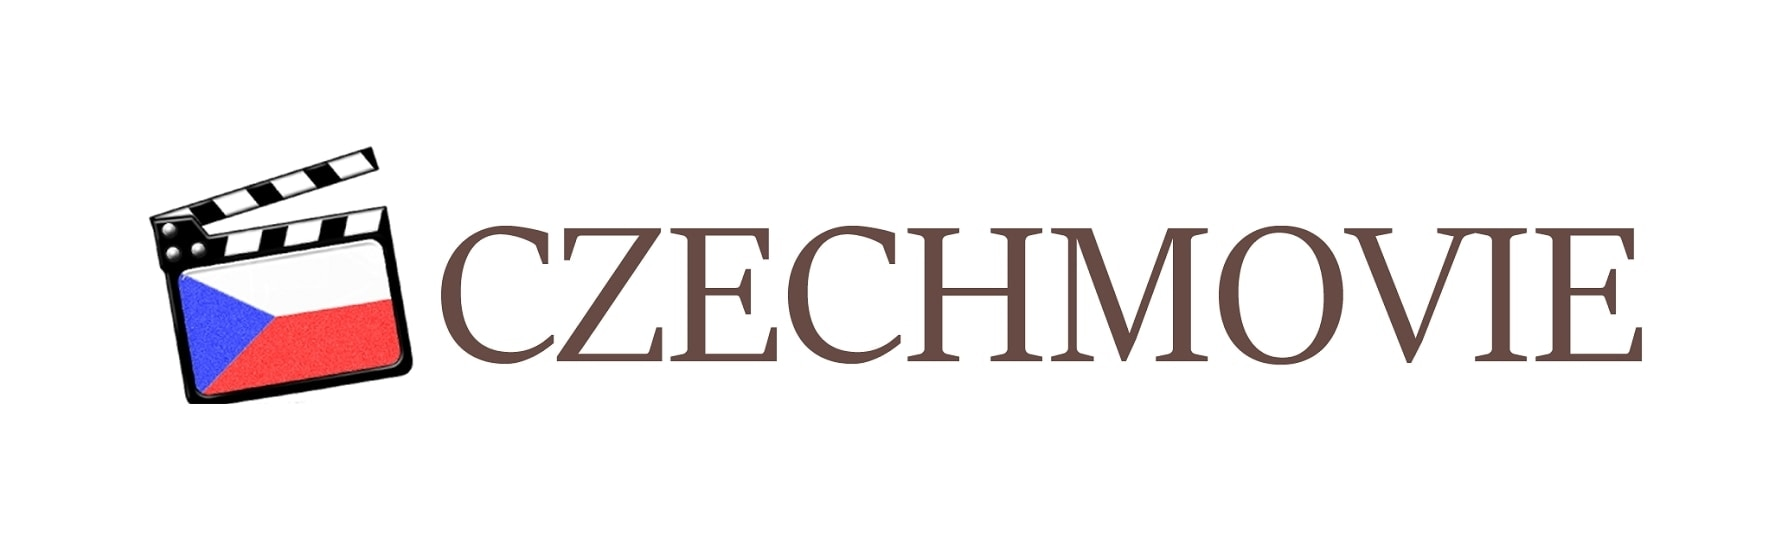 CzechMovie promo codes